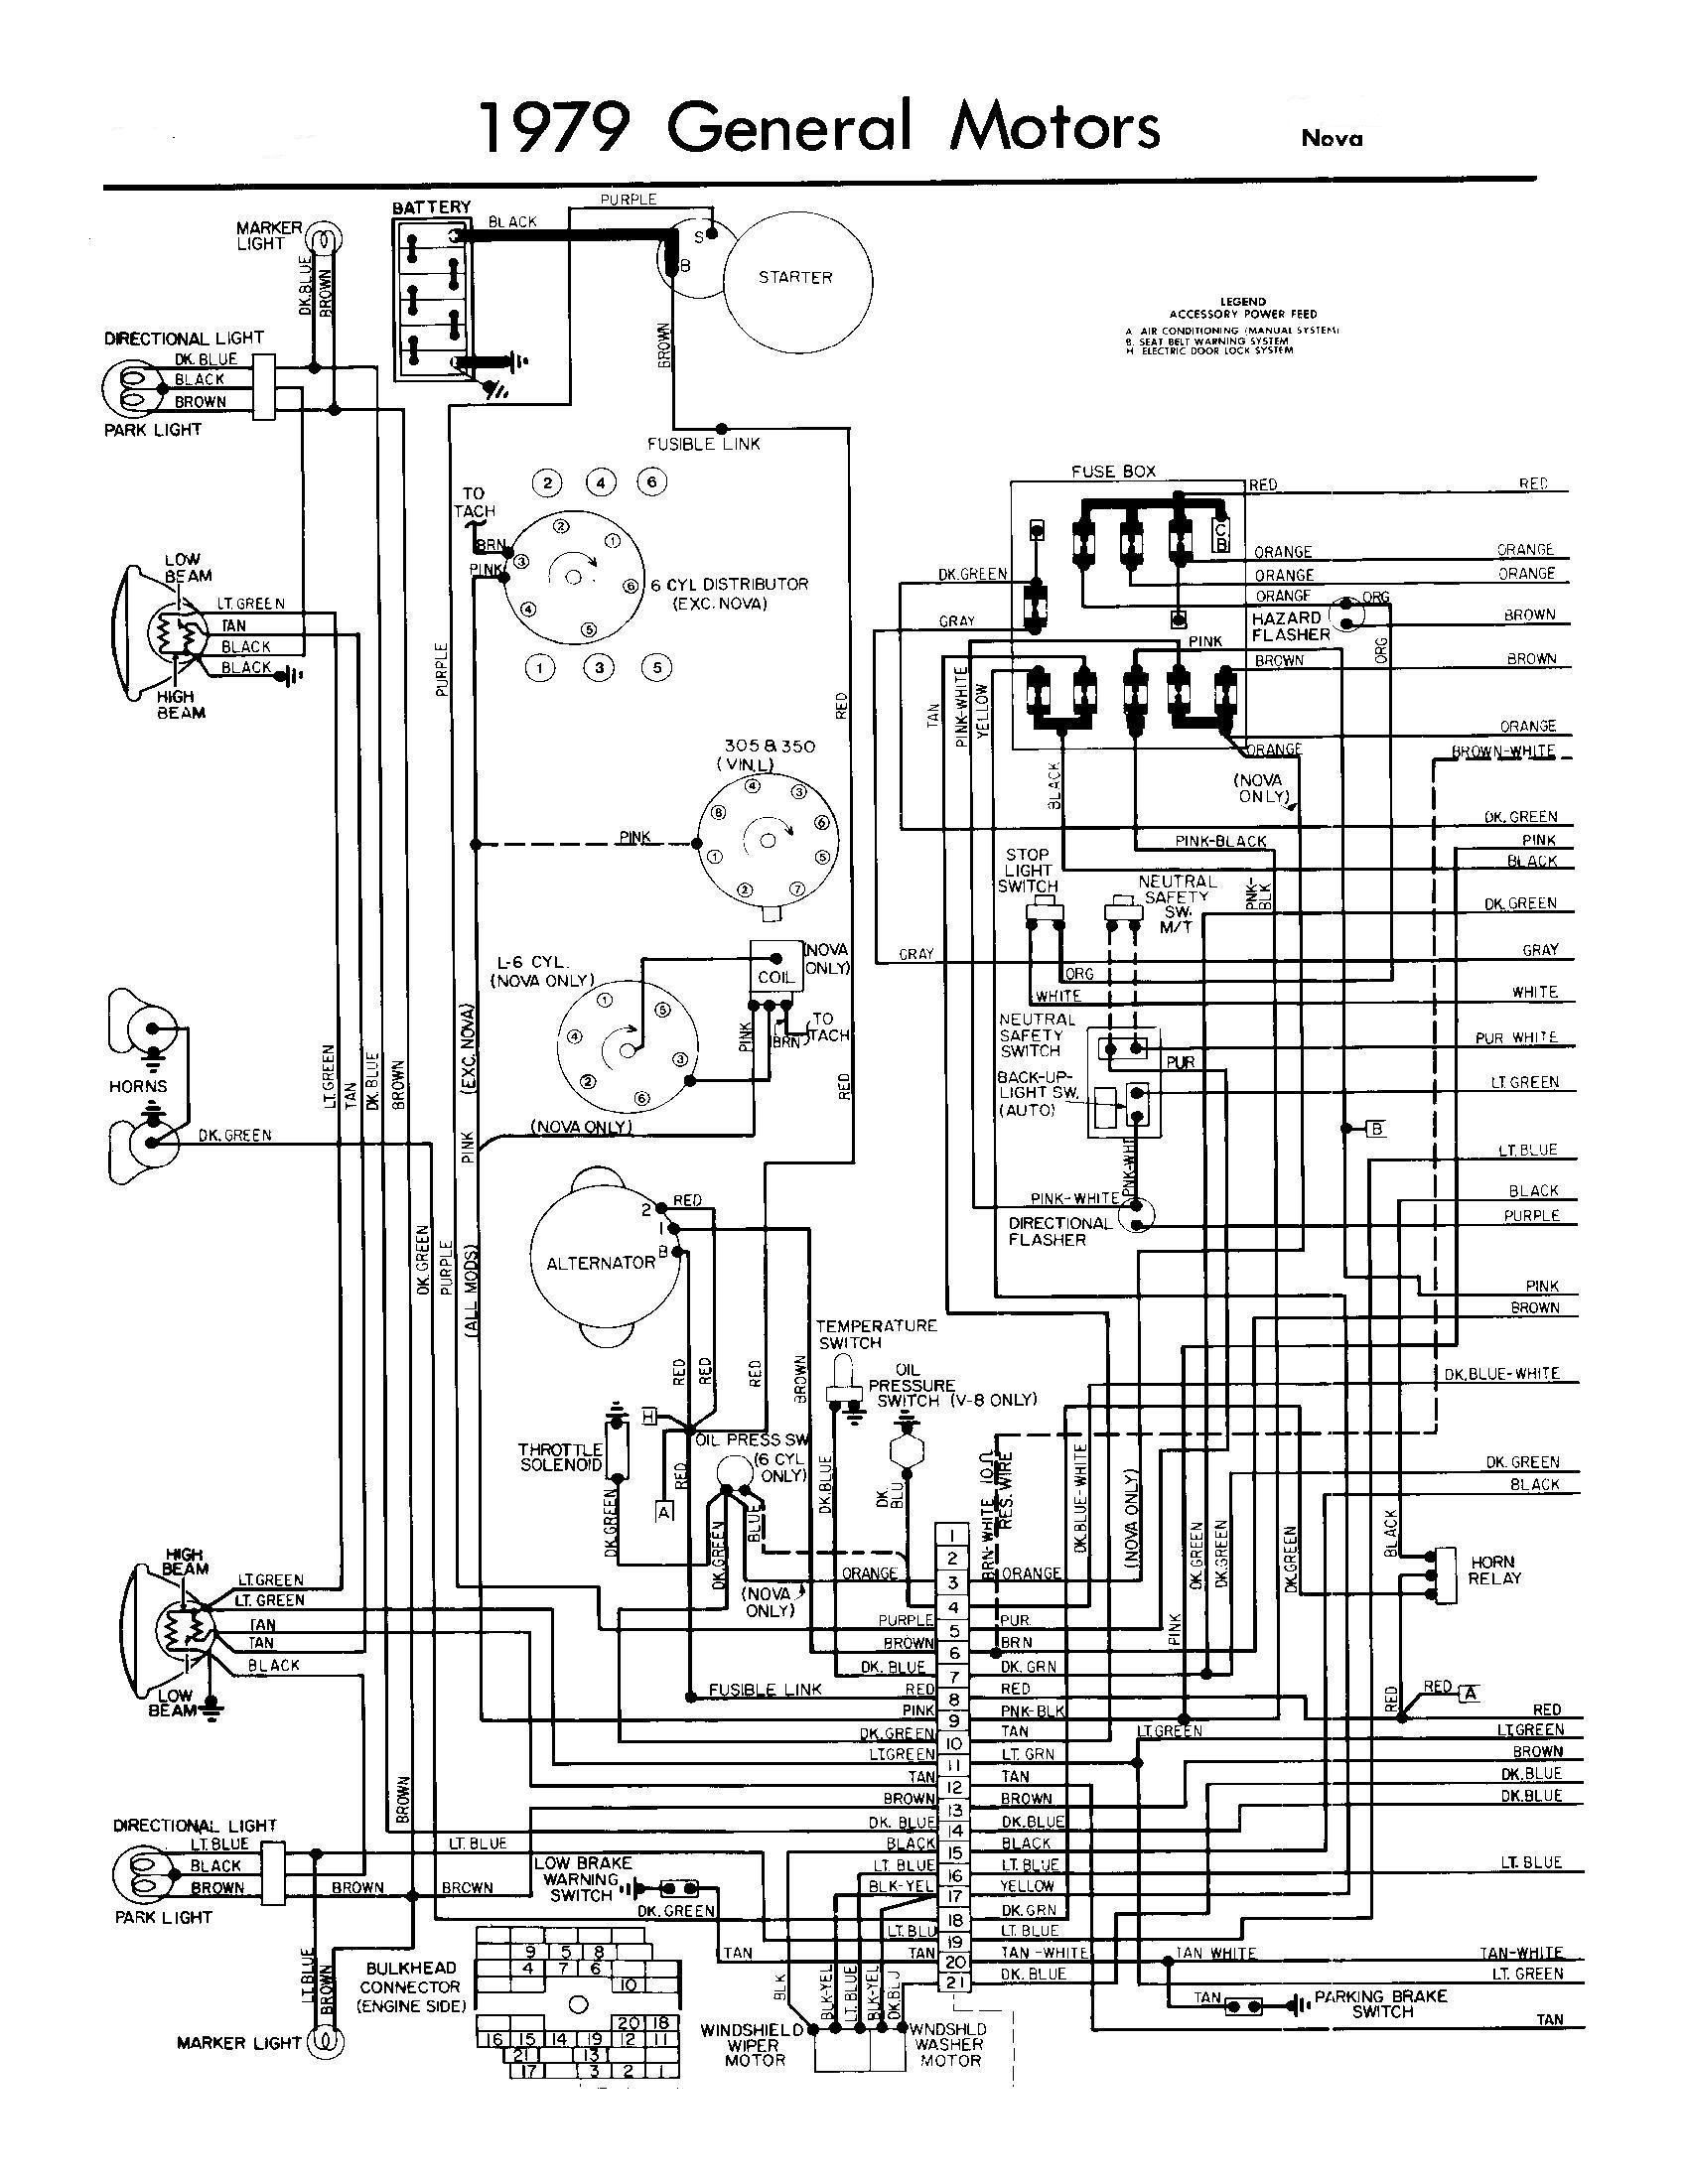 1977 nova wiring diagram simple wiring diagram rh 40 mara cujas de 1972 nova wiring diagram 1974 chevy c10 wiring diagram [ 1699 x 2200 Pixel ]